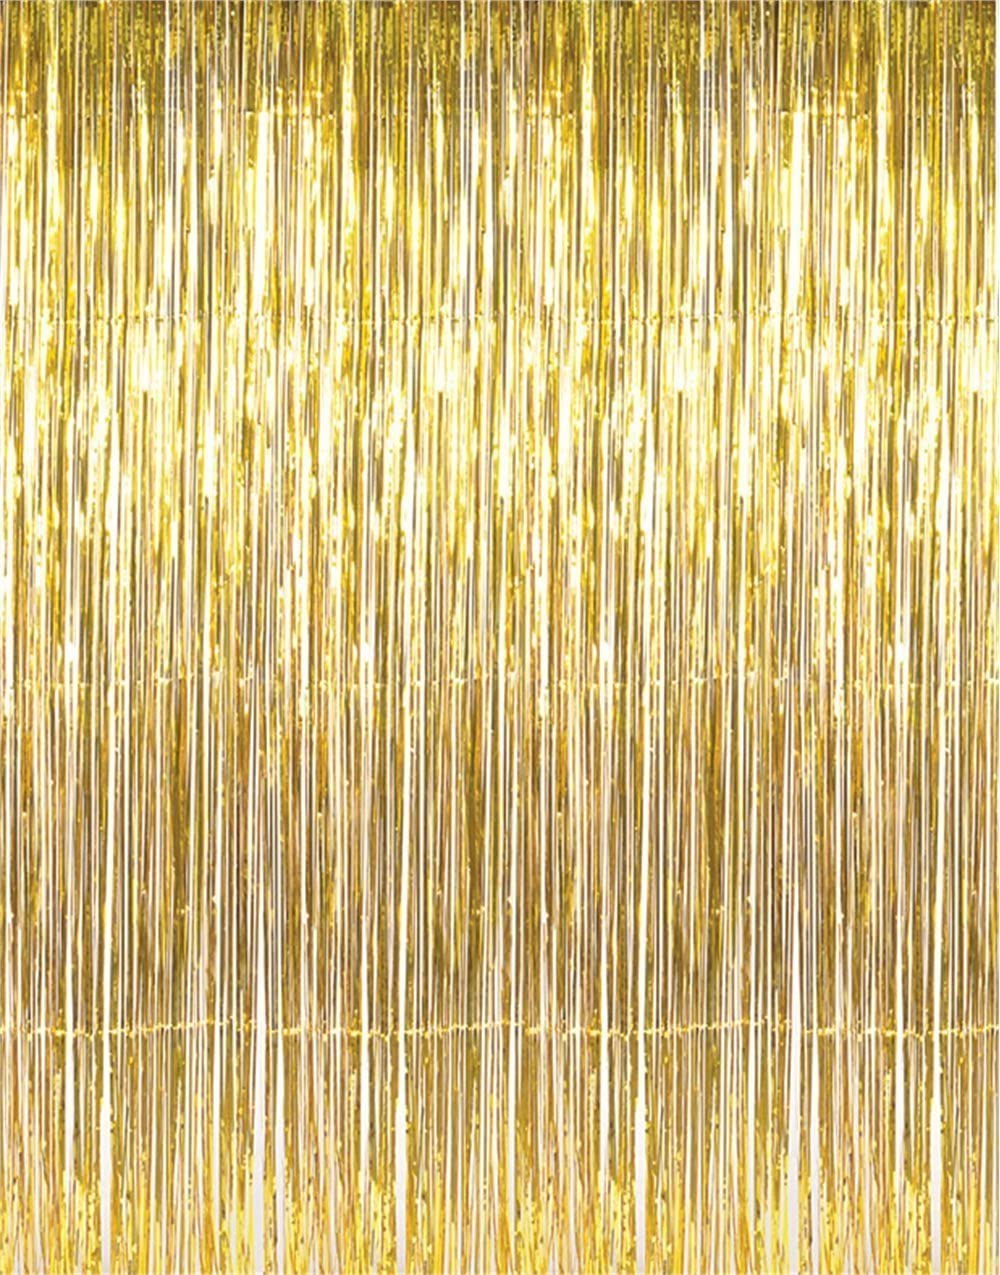 Classier: Buy GOER GOER 3.2 ft x 9.8 ft Metallic Tinsel Foil Fringe Curtains for Party Photo Backdrop Wedding Decor (1 Pack, Red)